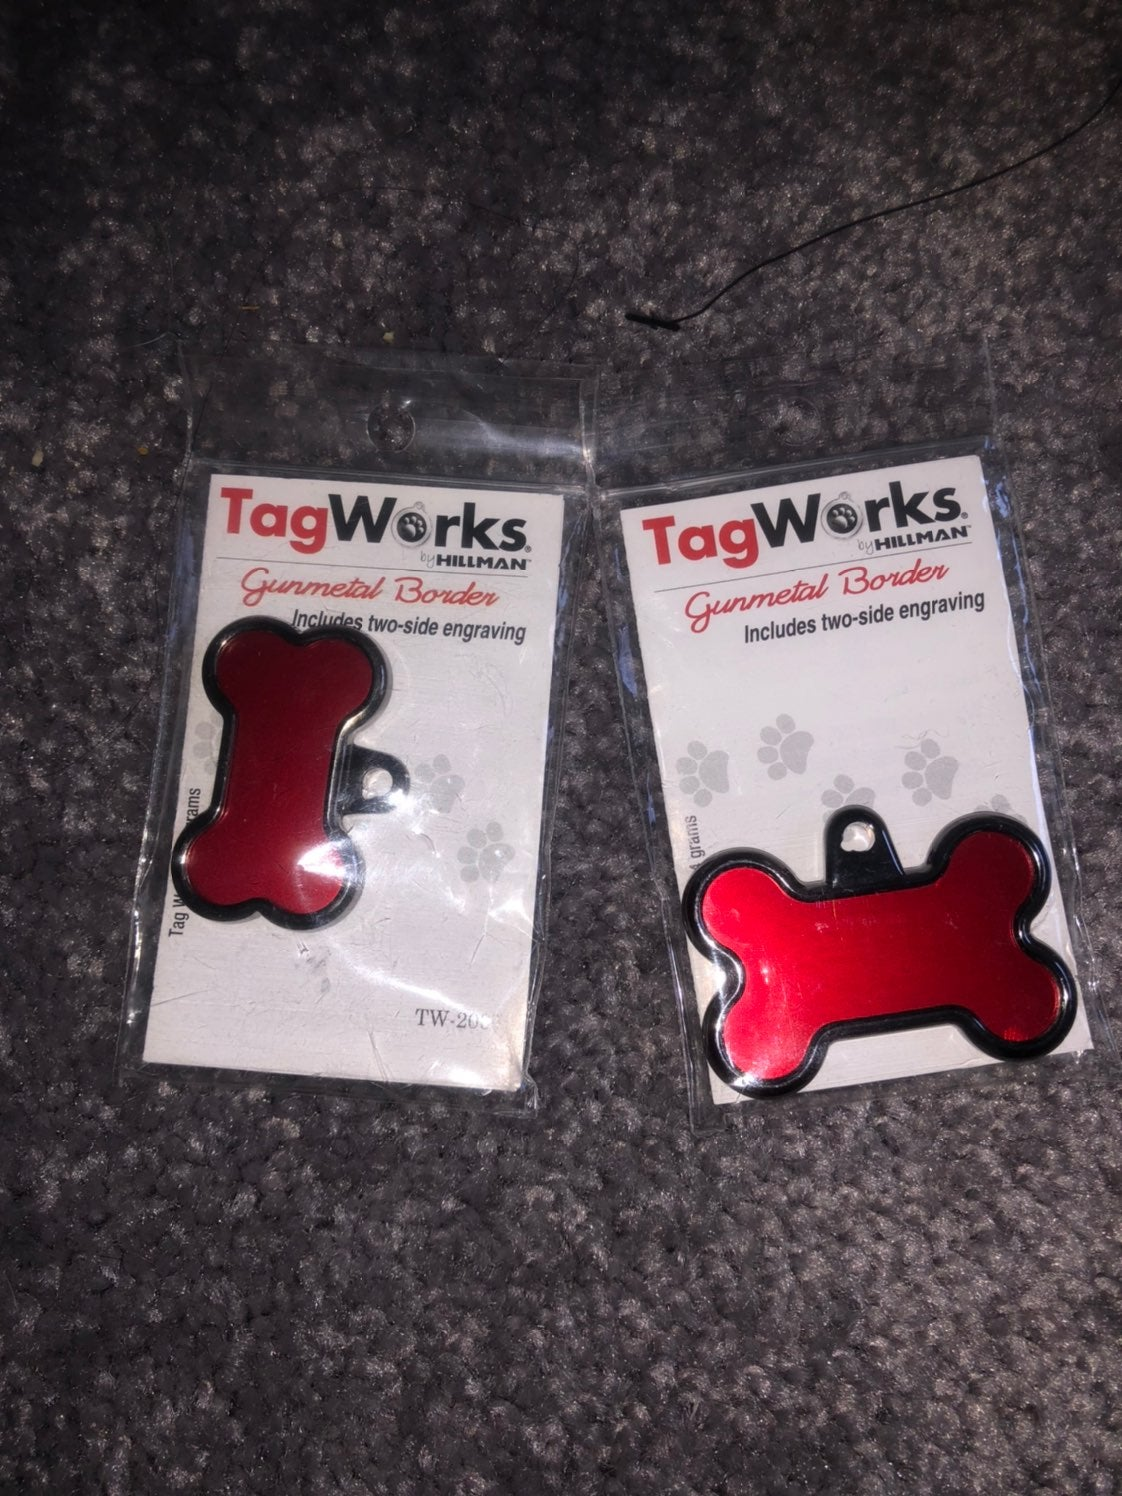 small red pet tag